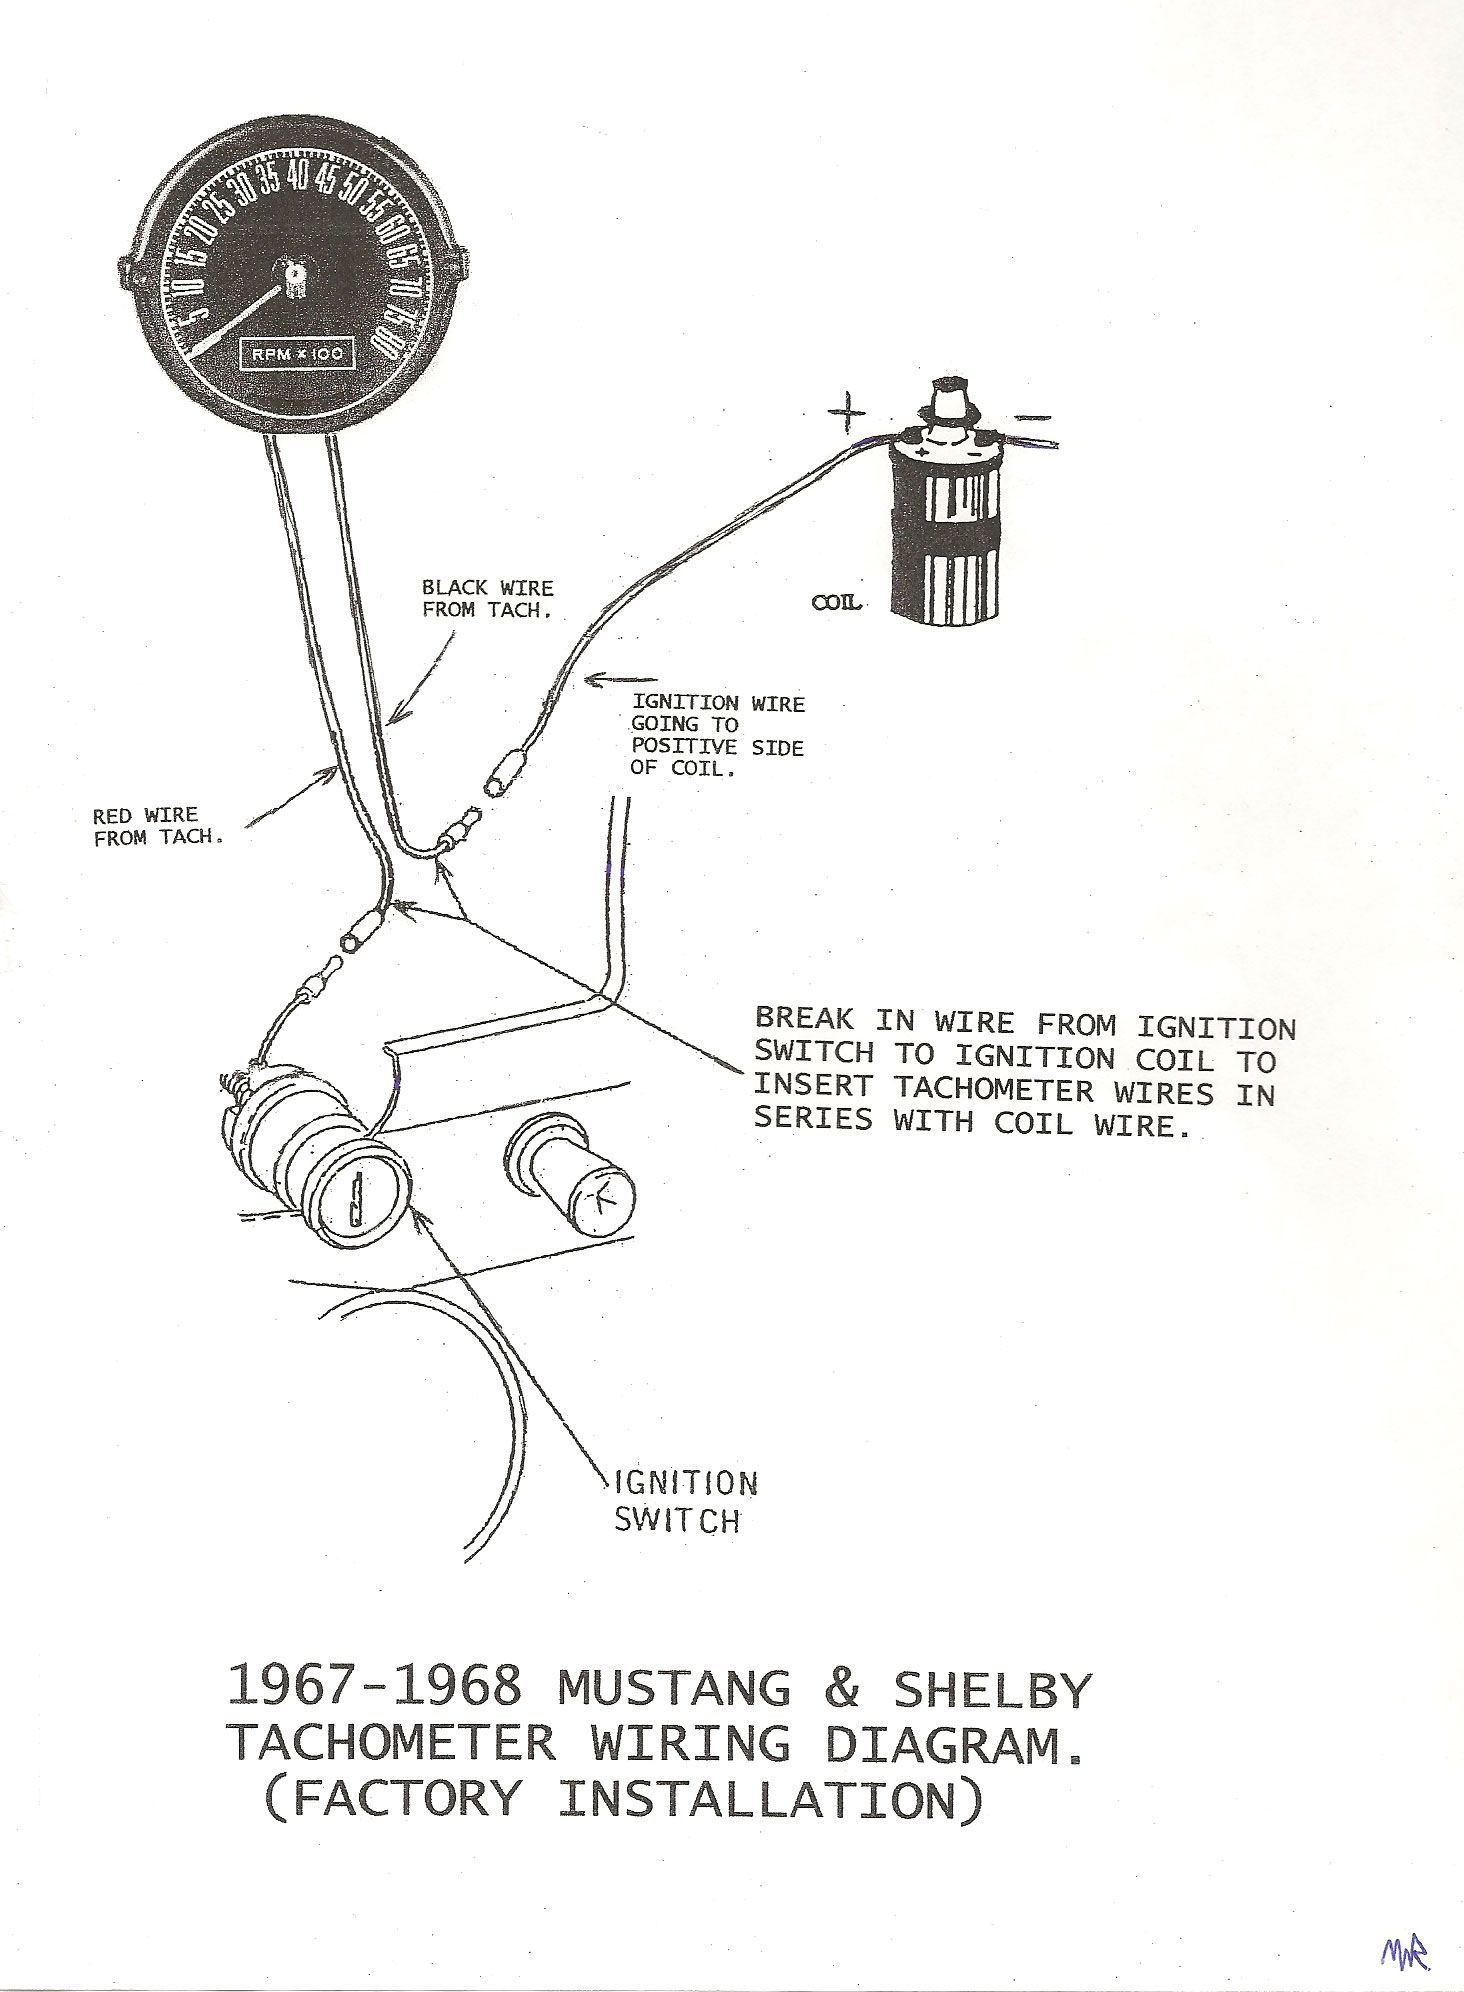 1980 Mustang Tach Wiring Diagram Fuse Box 1967 To Tachometer 68 Shelby Factory Rh Pinterest Co Uk